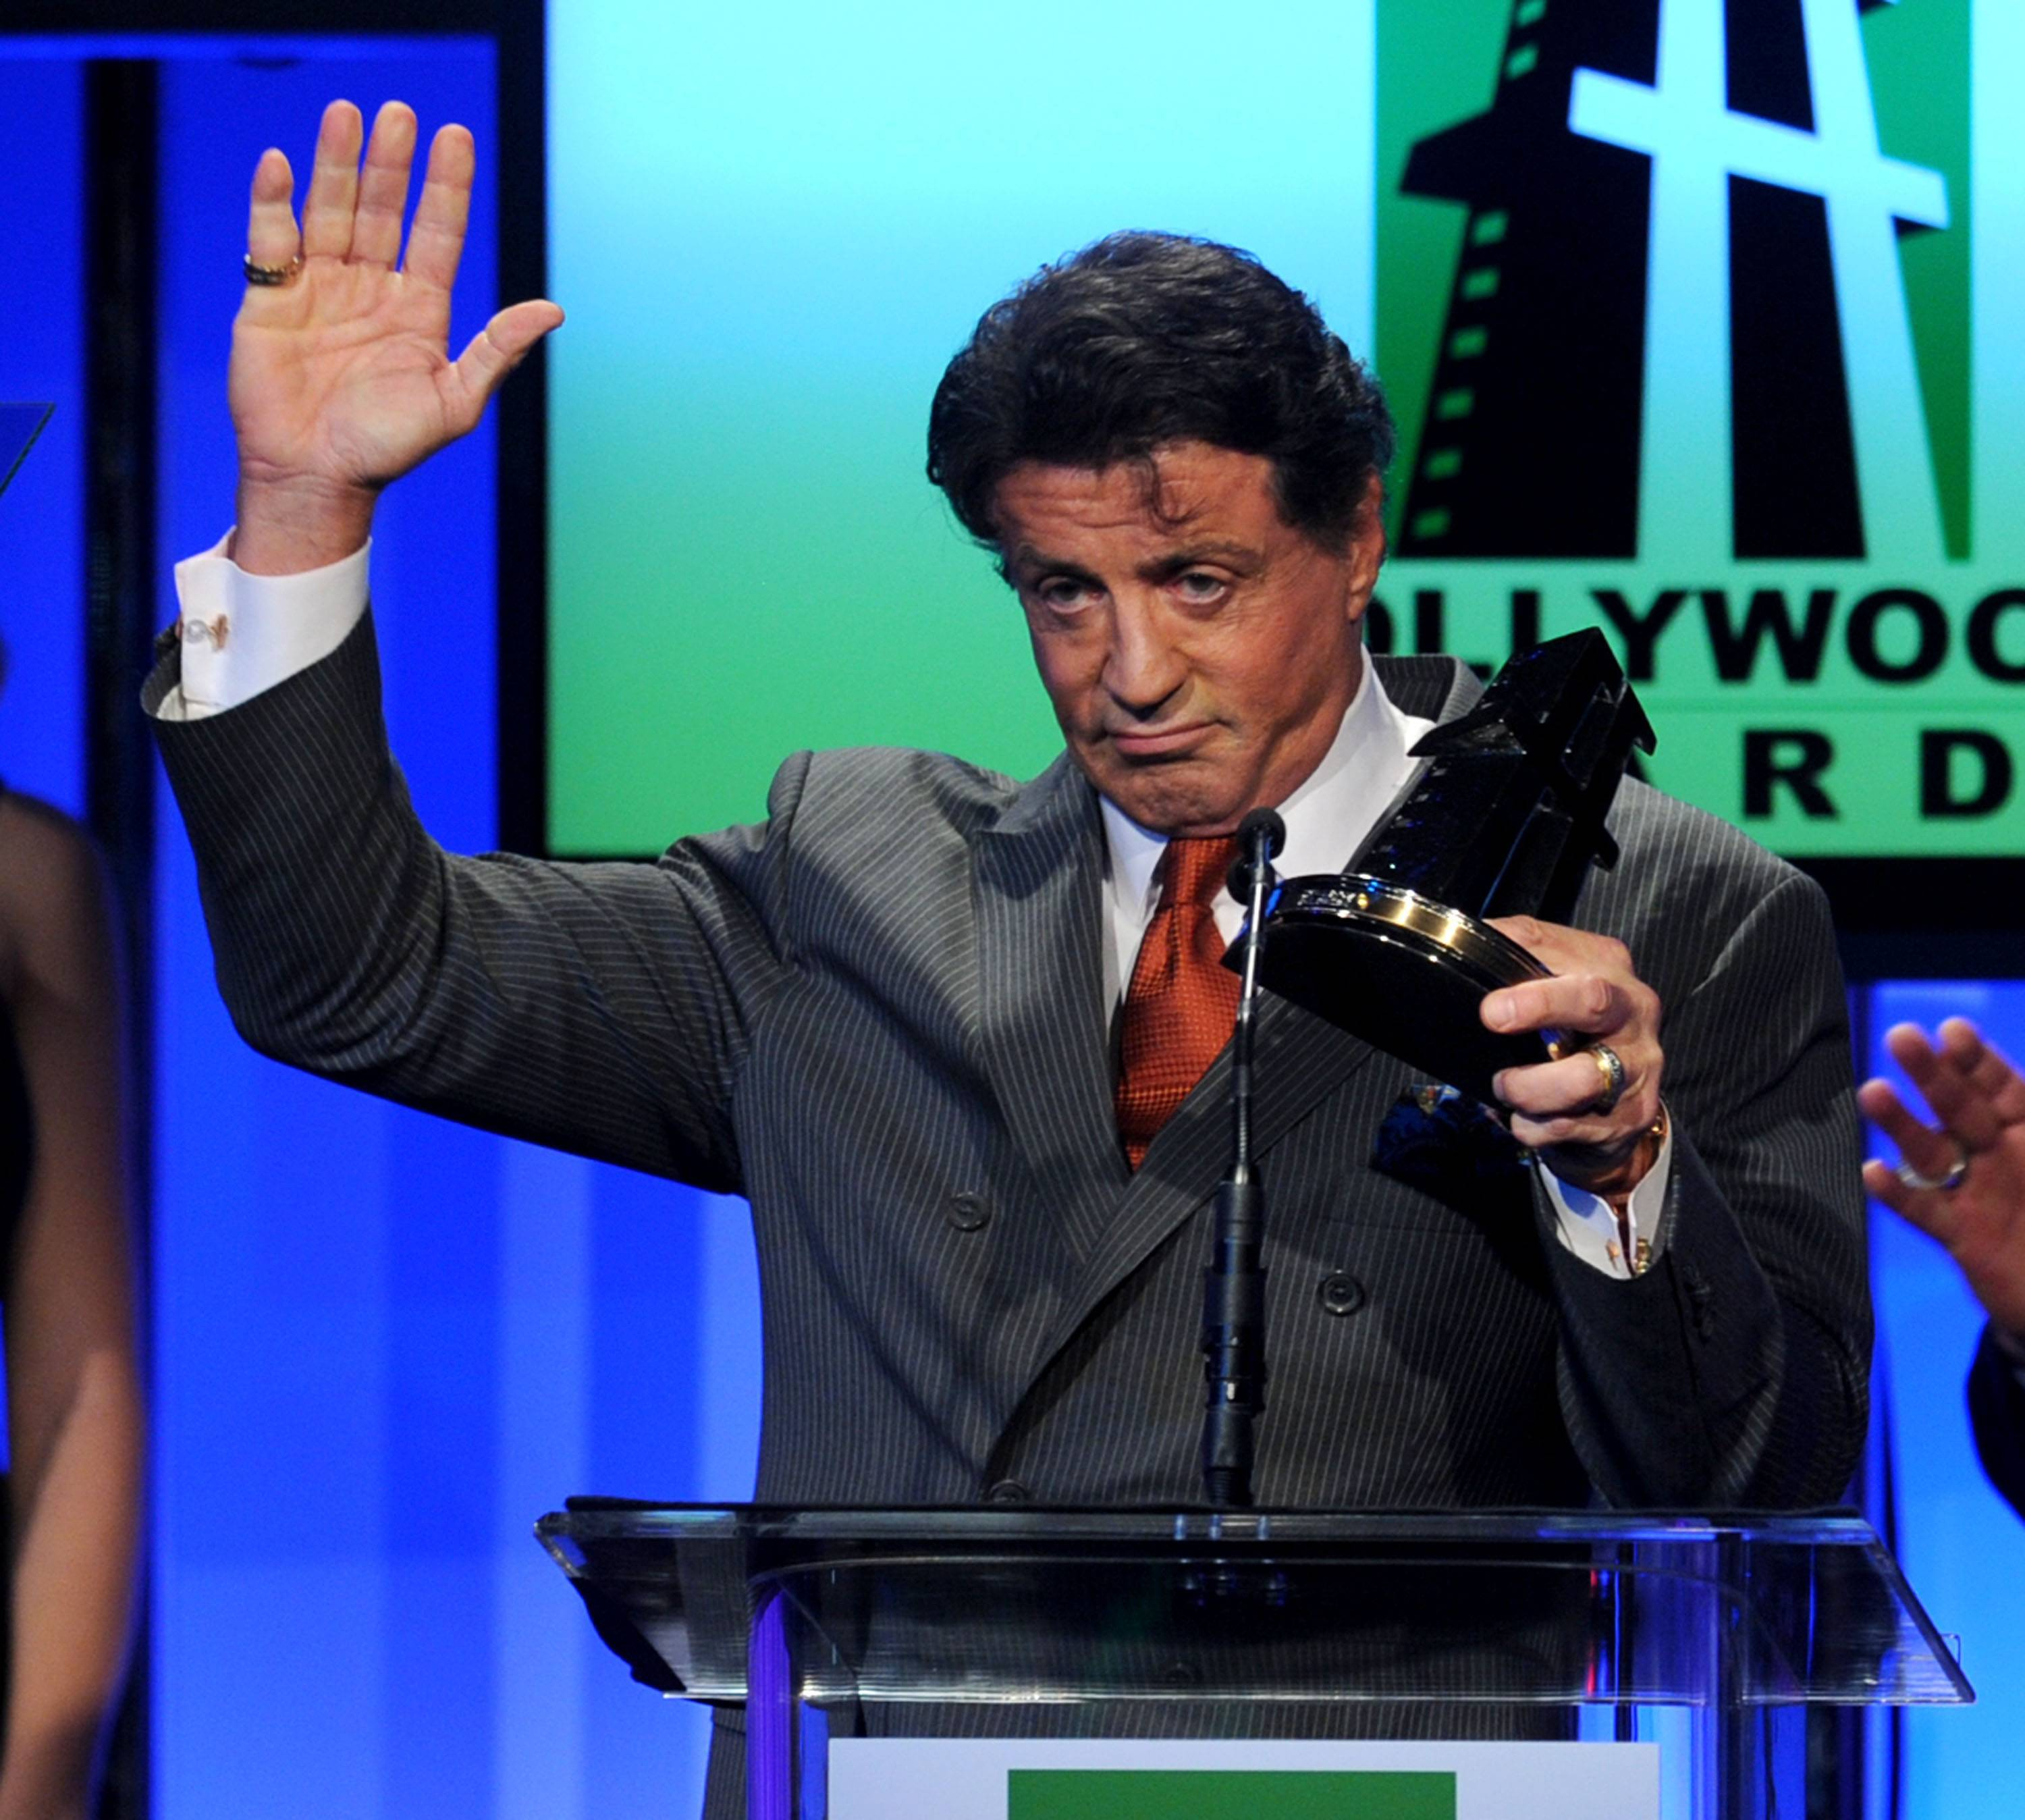 Actor/producer Sylvester Stallone accepts the Hollywood Career Achievement Award onstage during the 14th annual Hollywood Awards Gala at The Beverly Hilton Hotel on October 25, 2010 in Beverly Hills, California.